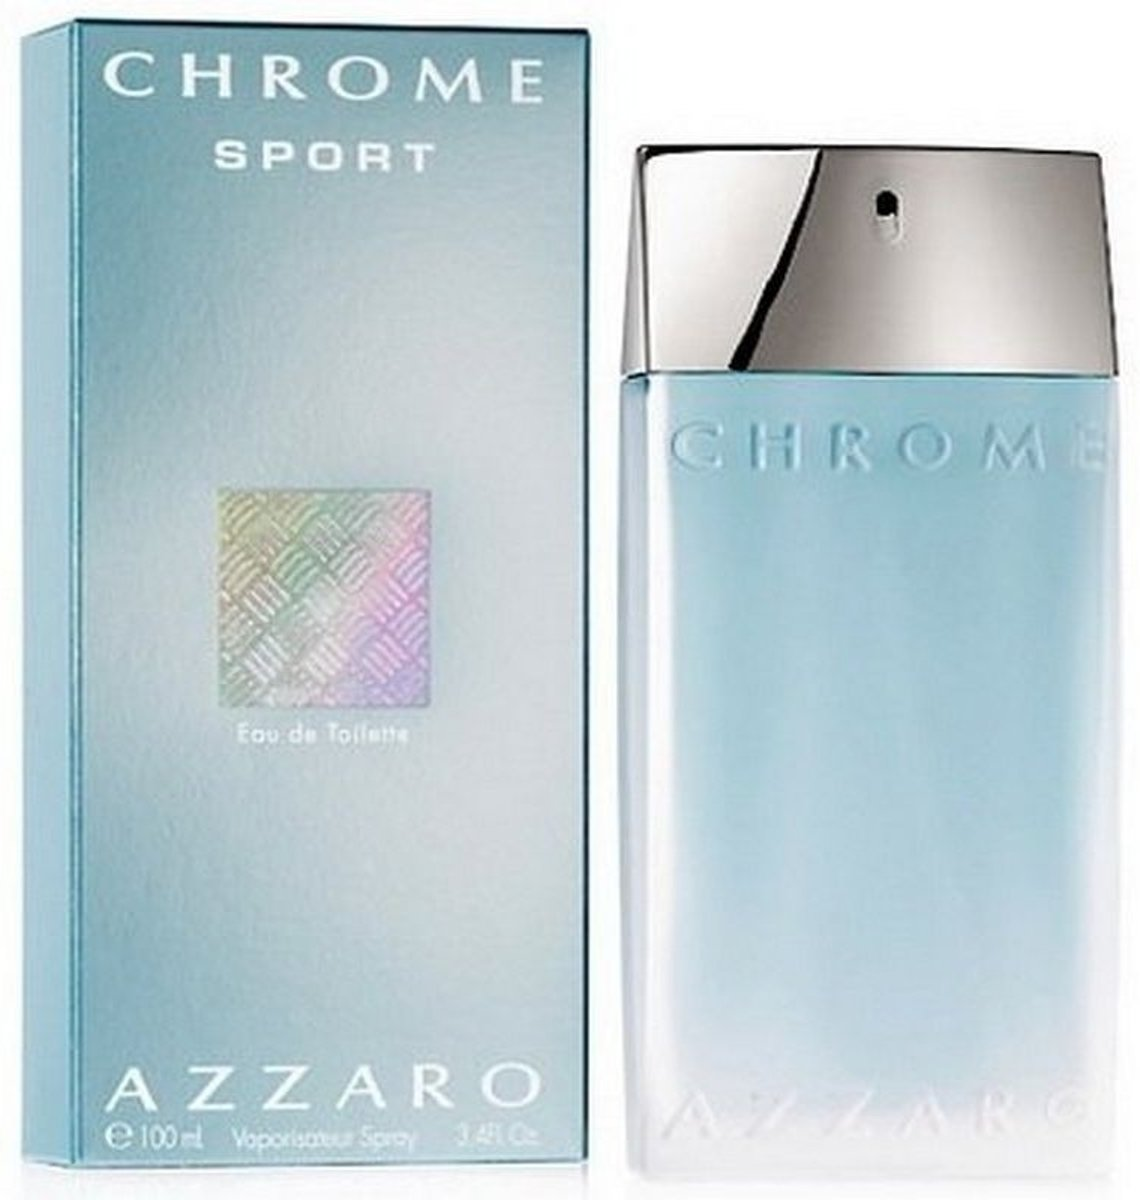 Azzaro Chrome Sport - 50 ml - Eau de Toilette